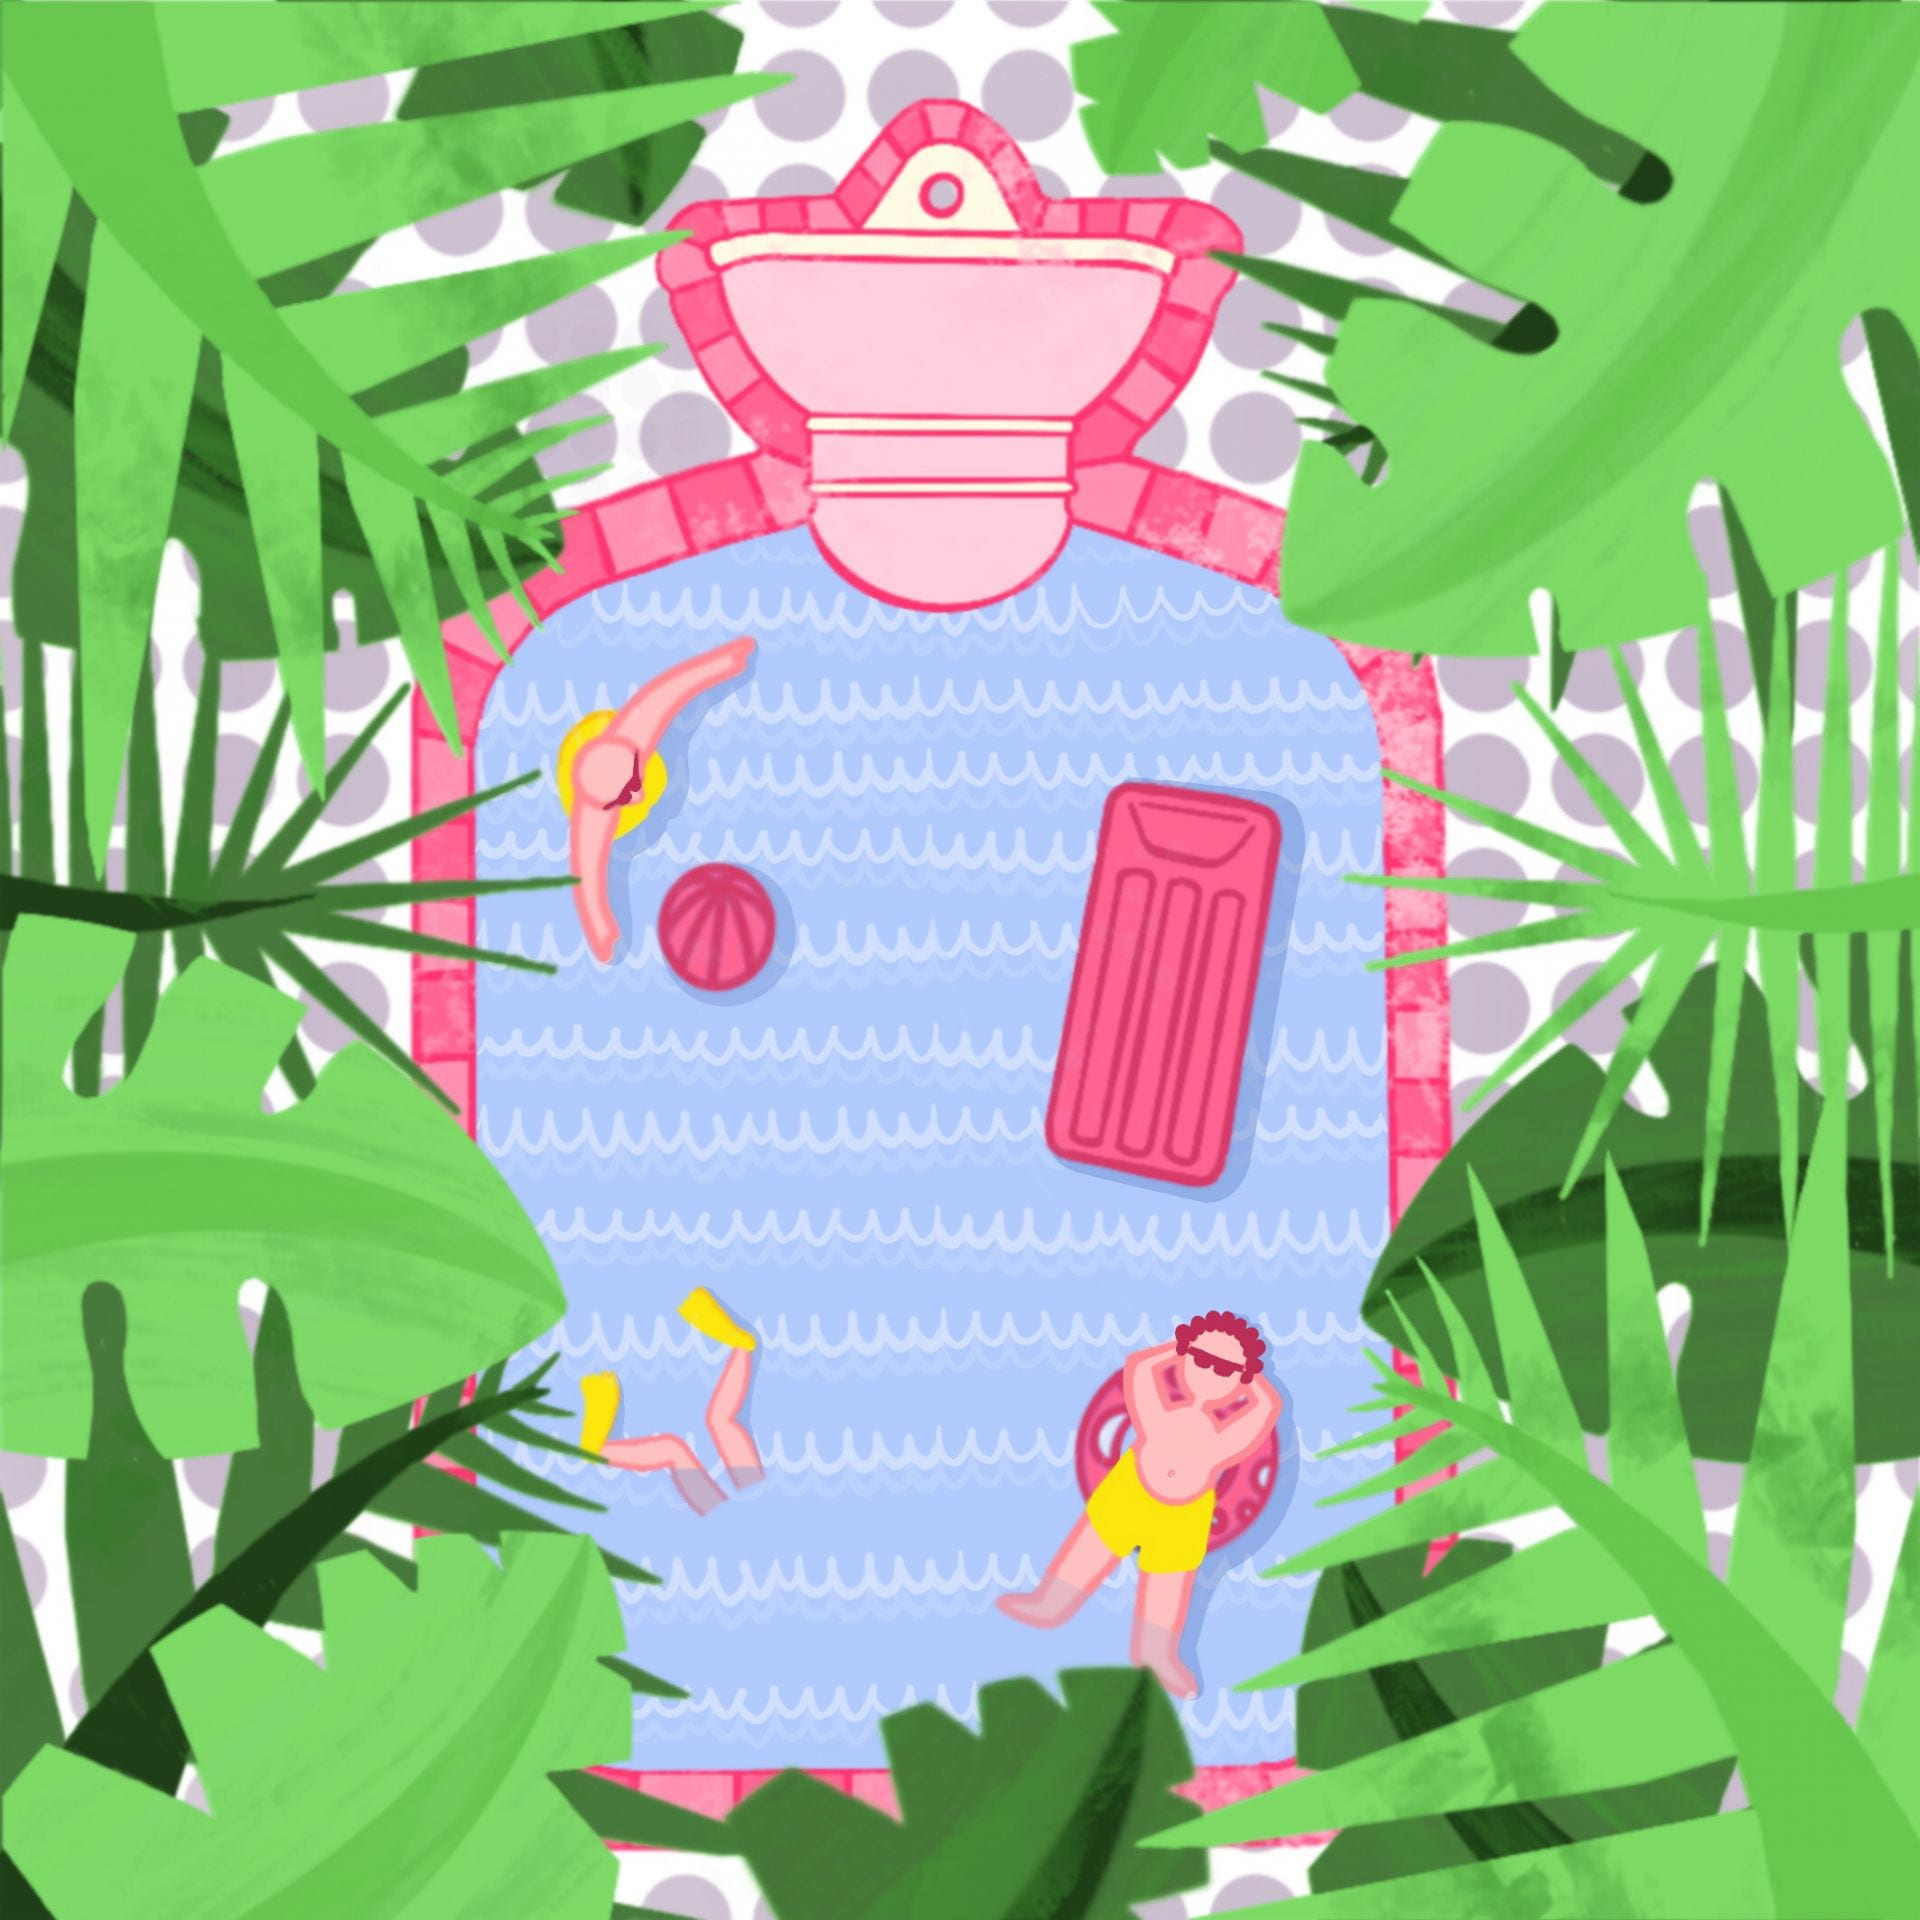 Illustration. Palm leaves border a top-down view of man wearing yellow shorts, sunbathing in pool.